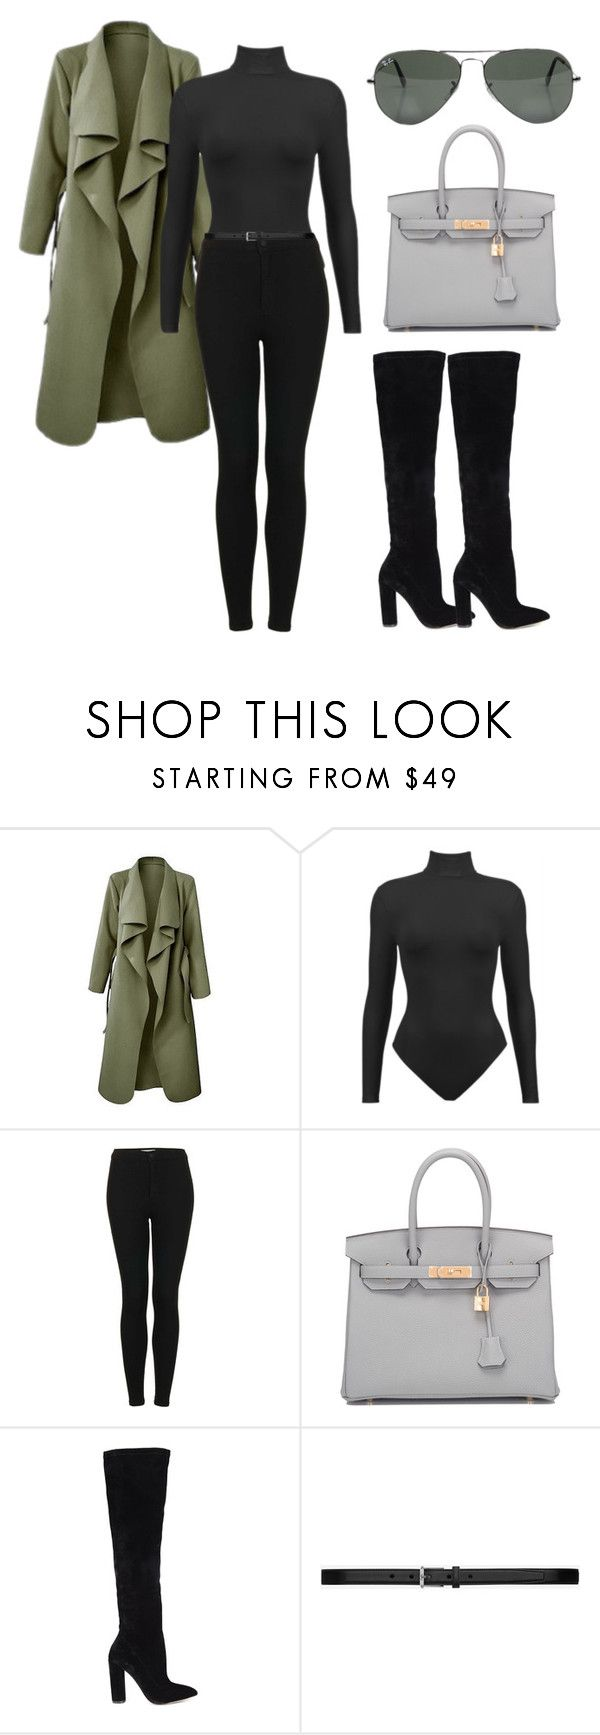 """Untitled #382"" by hallierosedale ❤ liked on Polyvore featuring Topshop, Hermès, ALDO, Ray-Ban and Yves Saint Laurent"